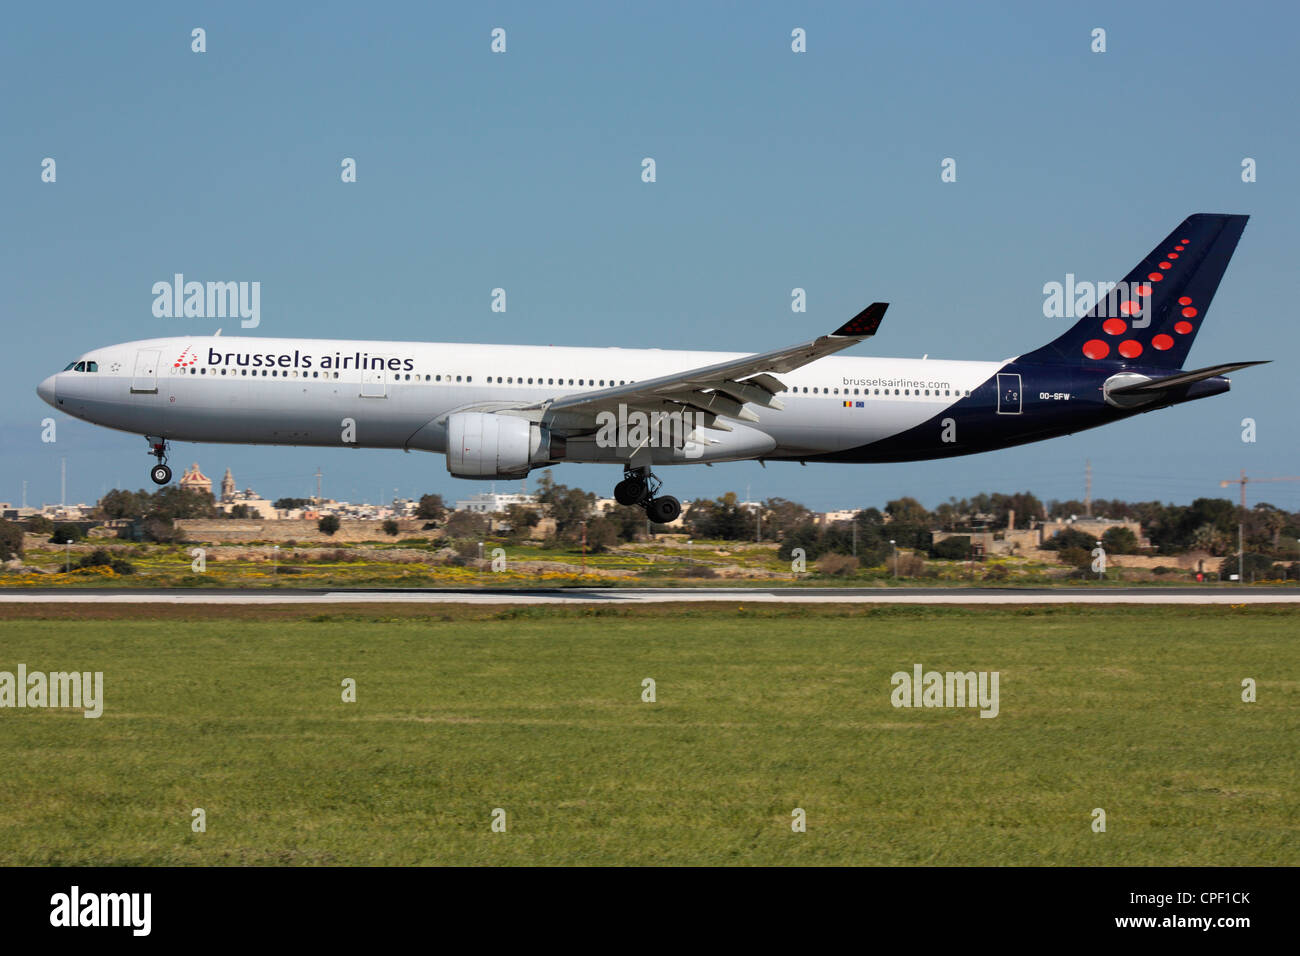 Brussels Airlines Airbus A330-300 arriving in Malta - Stock Image